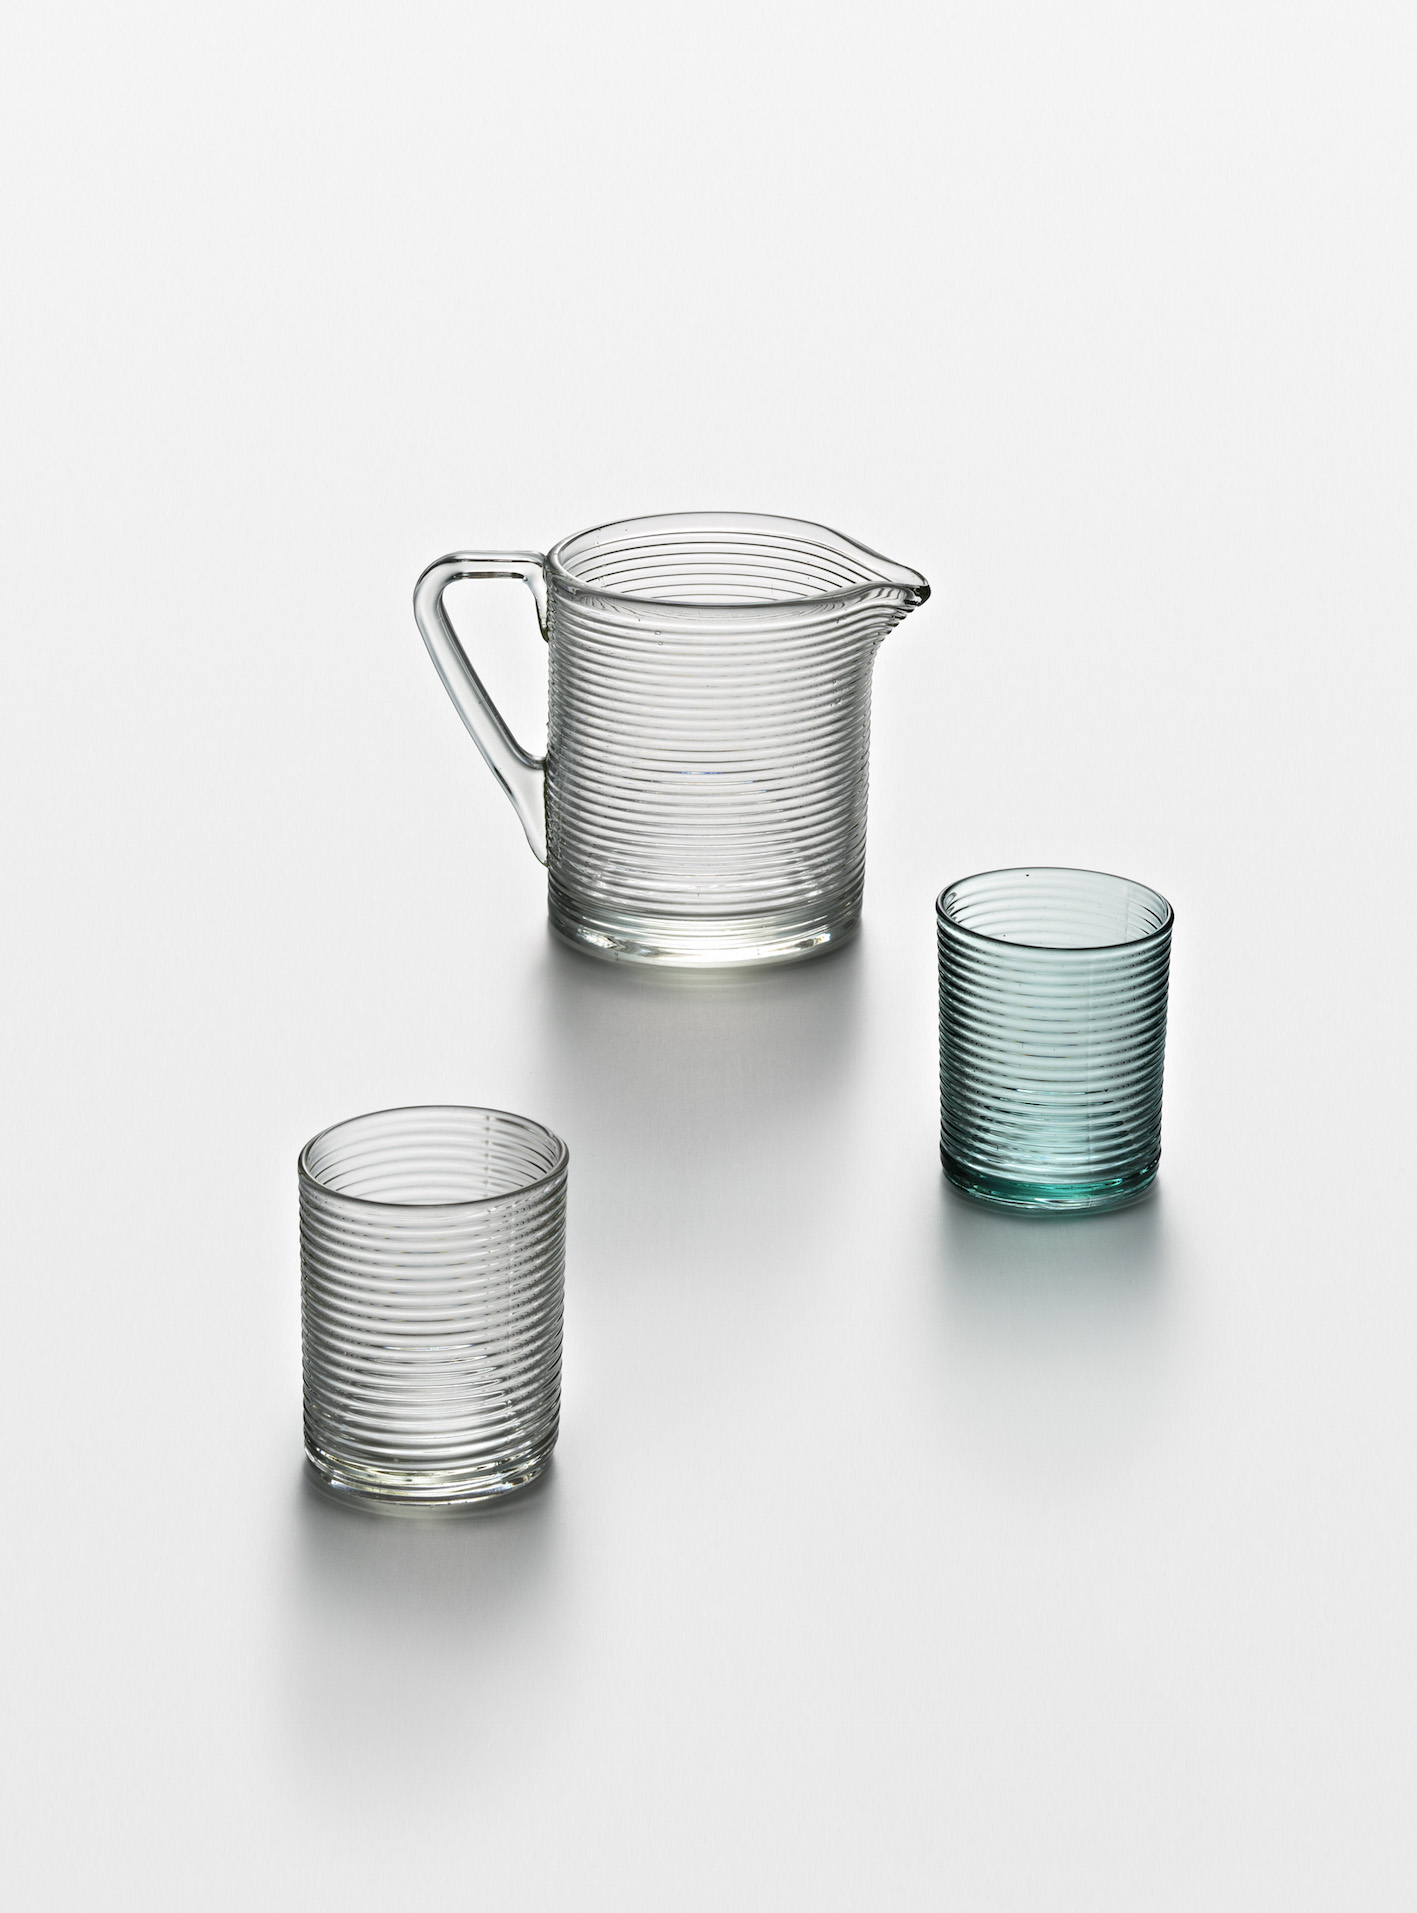 Aino Aalto, Pitcher and tumblers, 1936.